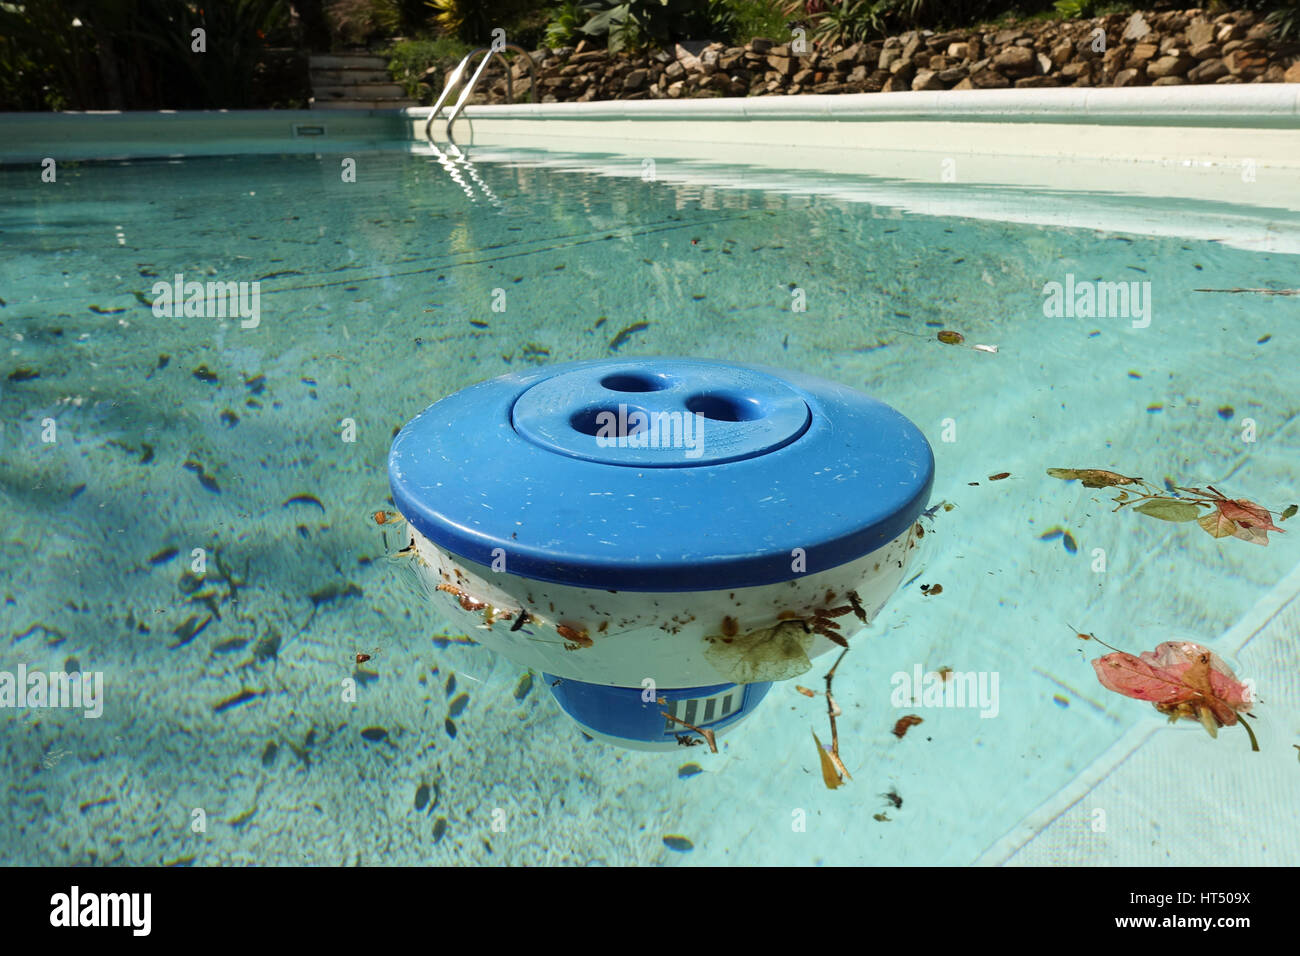 Chlorine container floating in dirty swimming pool, leaves, plastic. Stock Photo